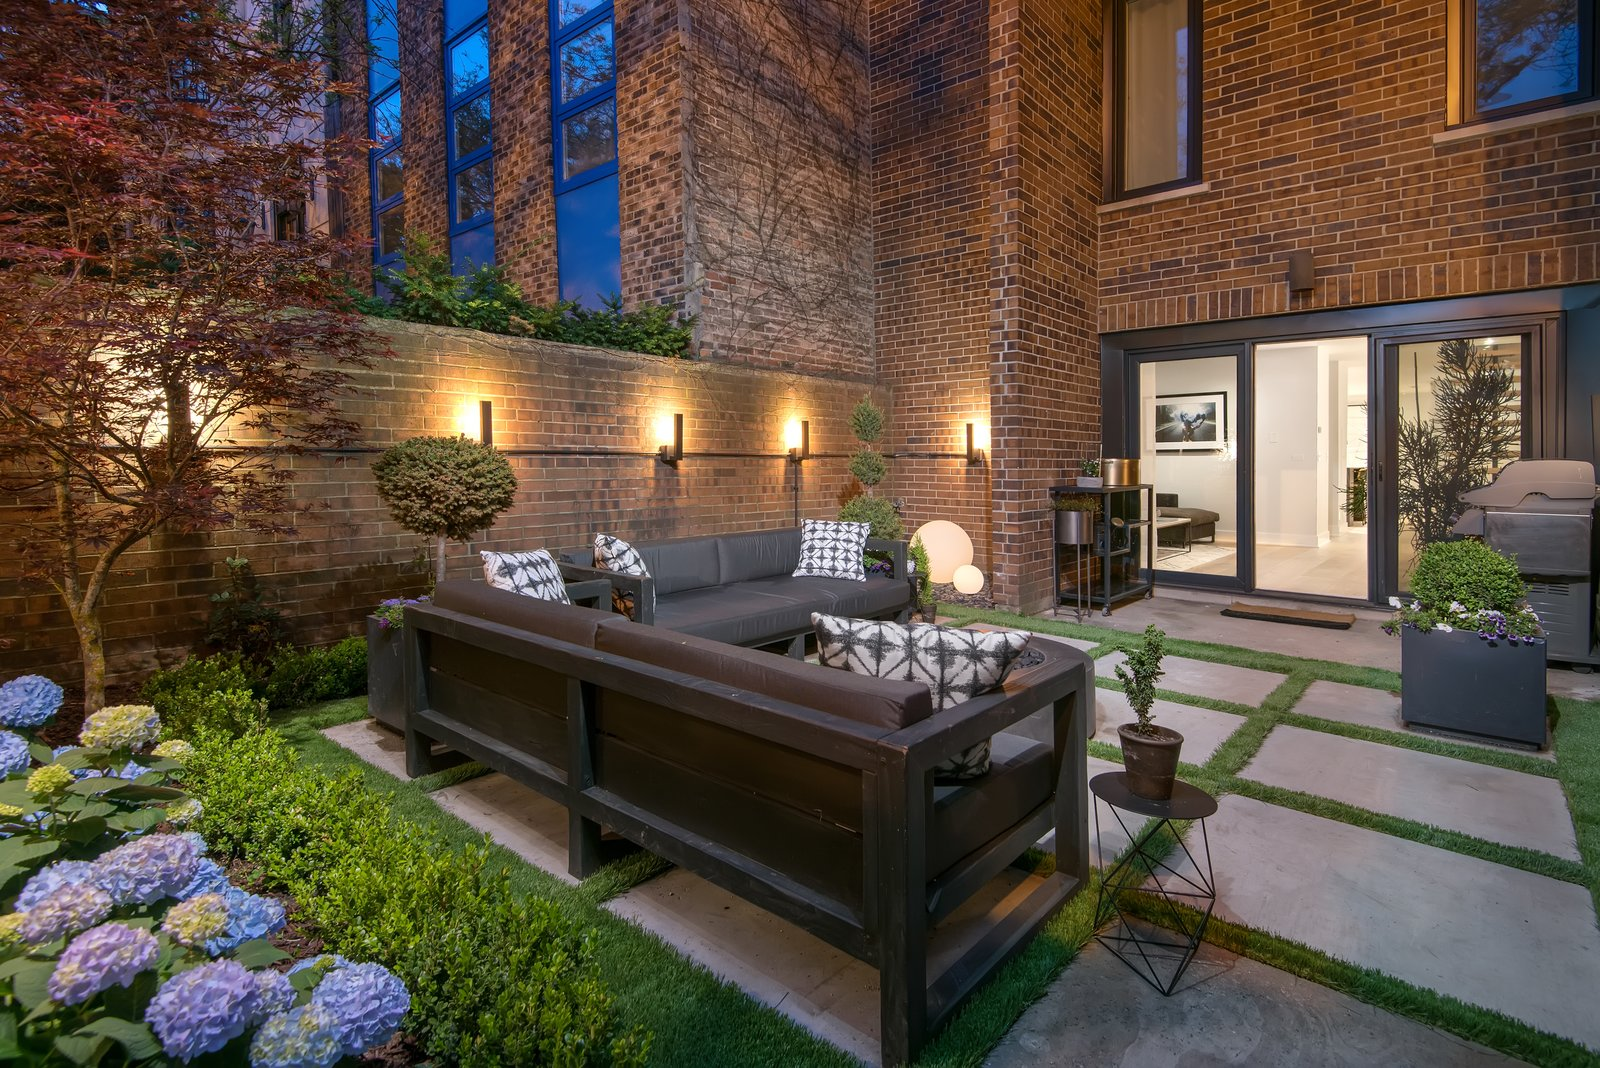 Old Town Rehab Modern Home in Old Town, Chicago, Illinois on Dwell